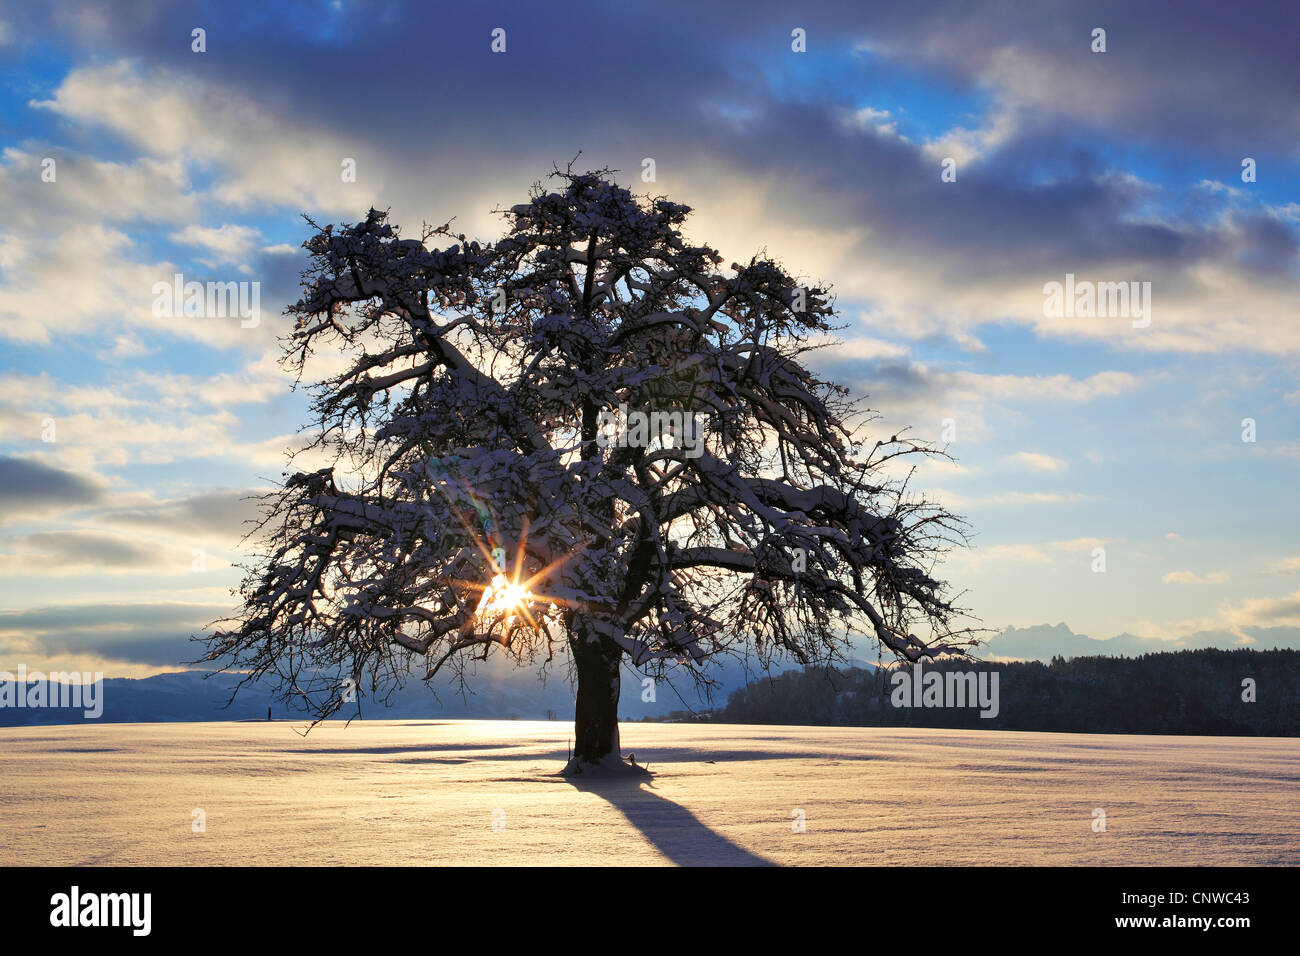 Wintry apple tree stock photos wintry apple tree stock for Domestica in svizzera